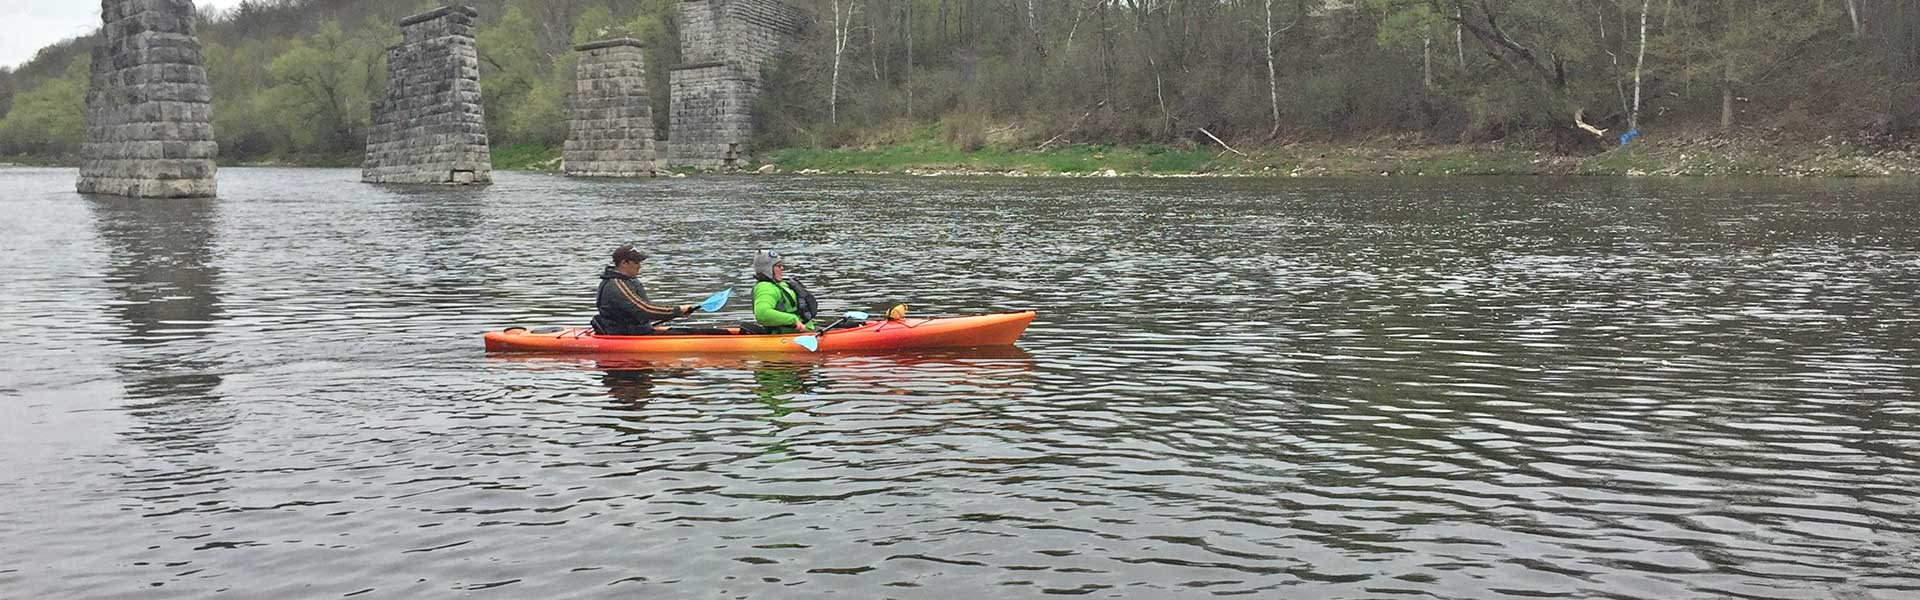 Grand River Rafting tandem kayaks are very stable for beginners